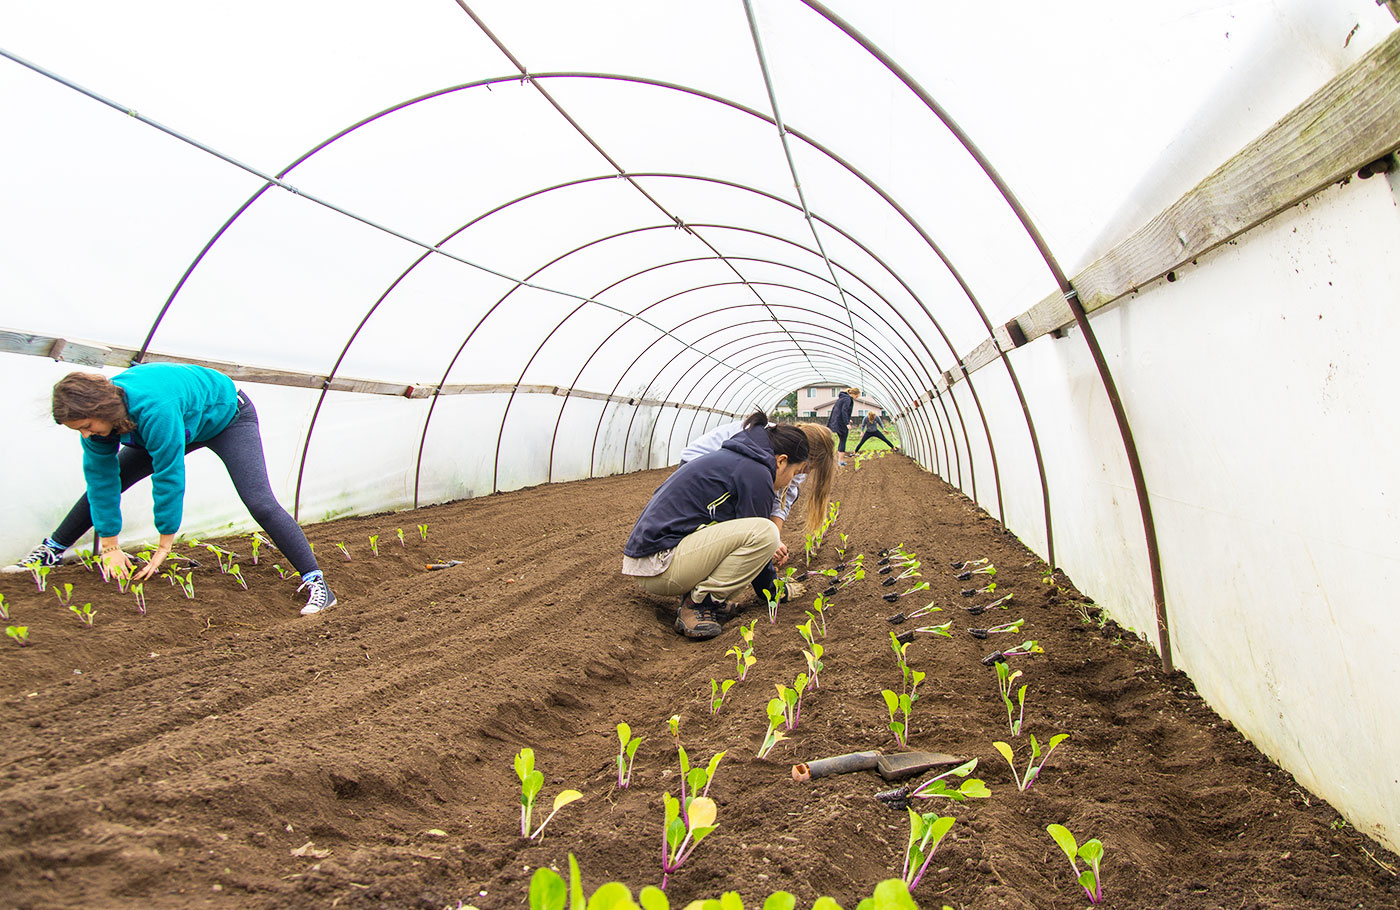 Students planting rows of plants in a greenhouse.